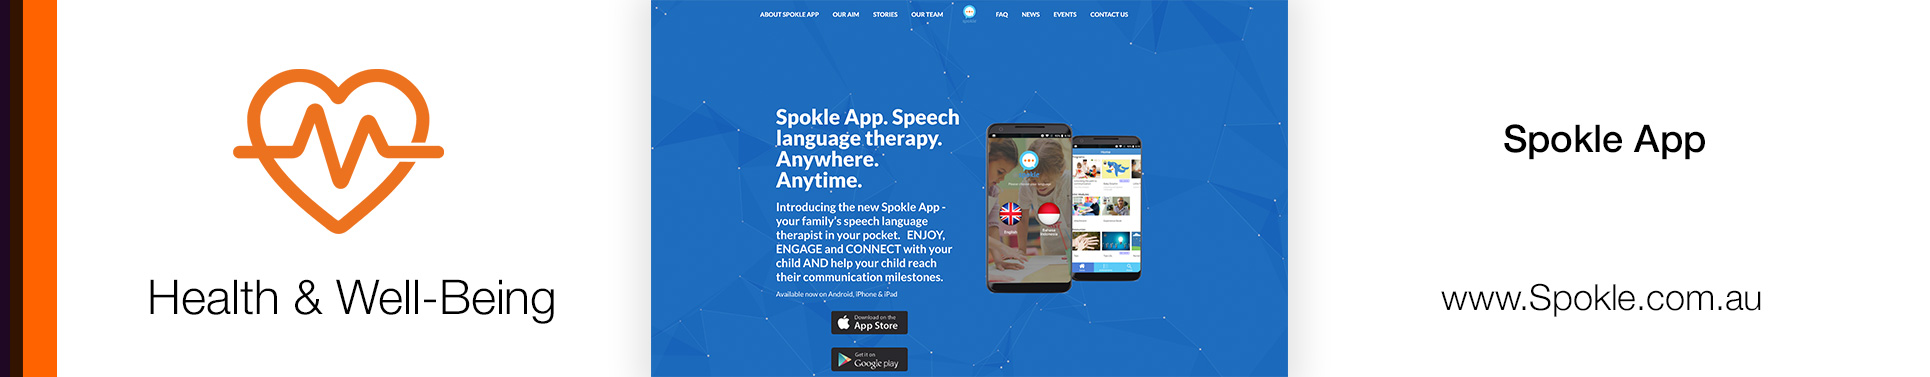 Spokle App will represent Australia at the World Summit Awards Global Competition